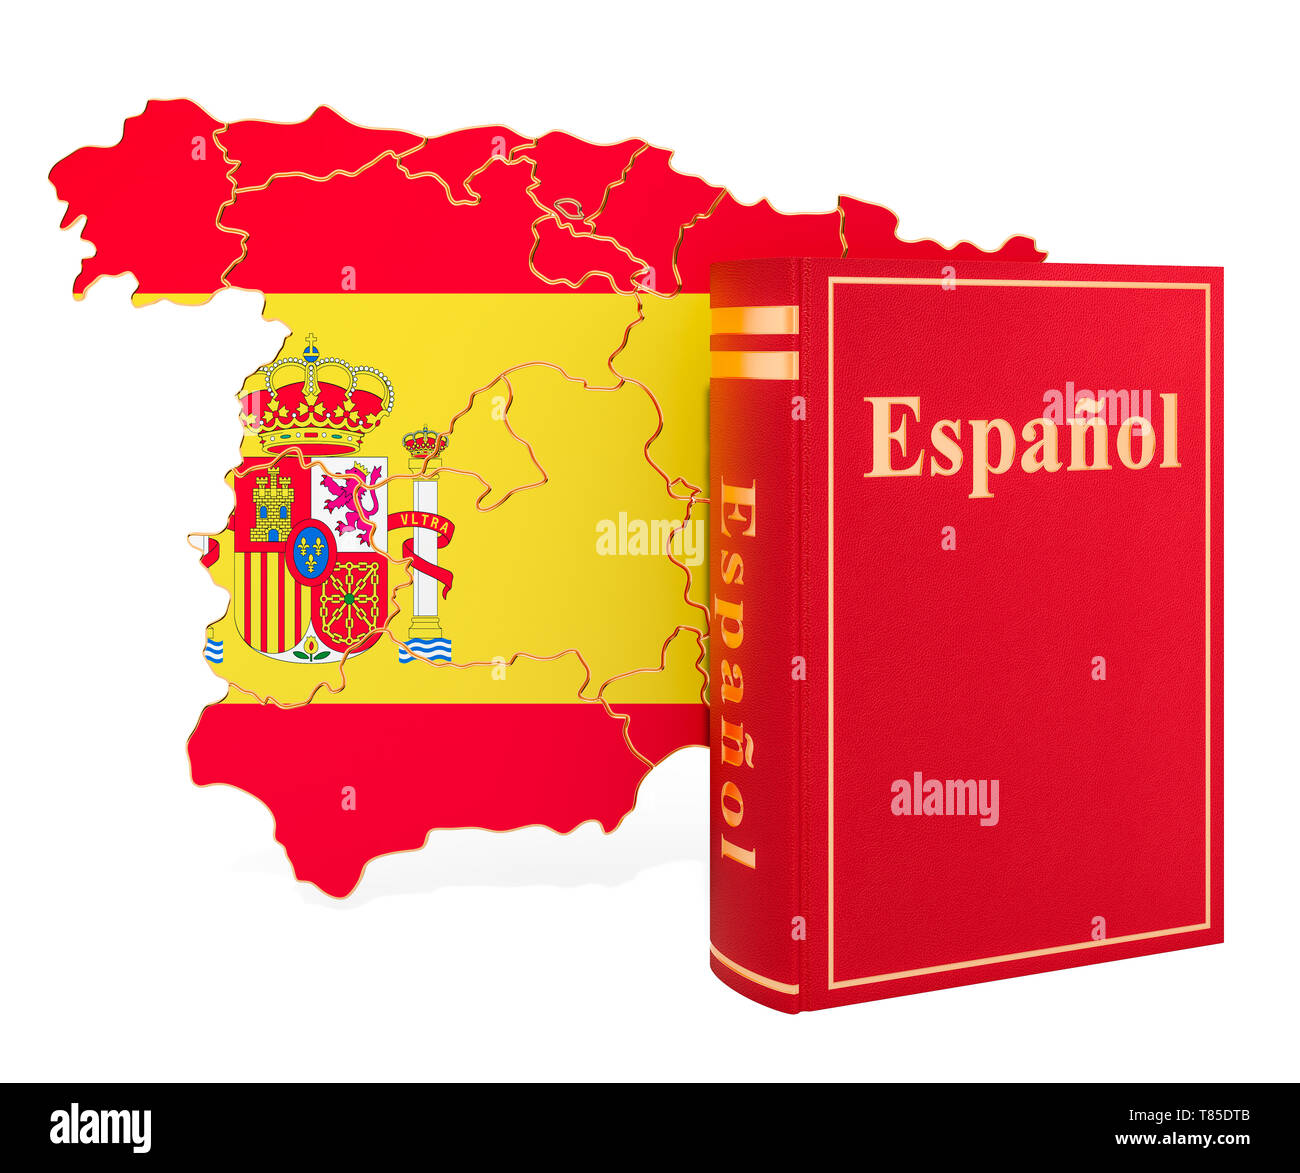 Spanish Map Of Spain.Spanish Language Book With Map Of Spain 3d Rendering Isolated On